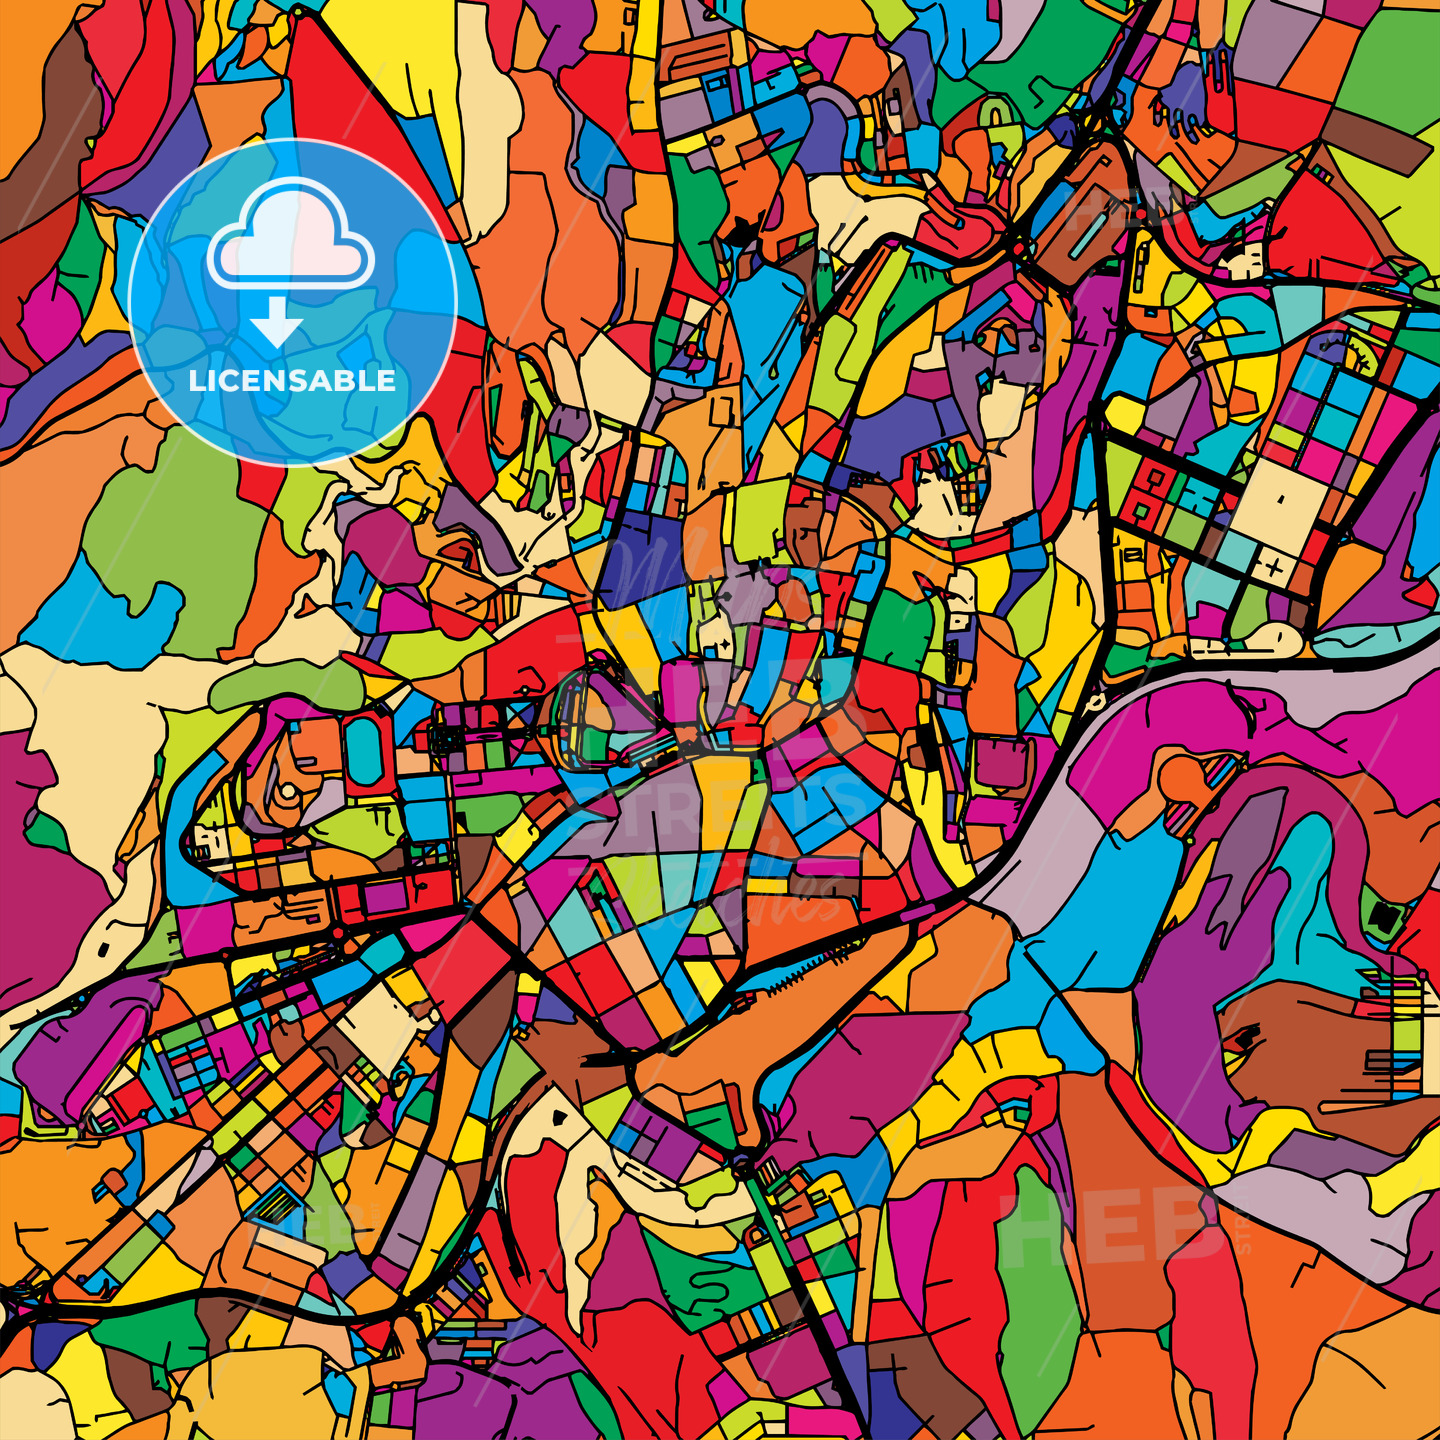 Santiago de Compostela Colorful Vector Map on Black - HEBSTREIT's Sketches